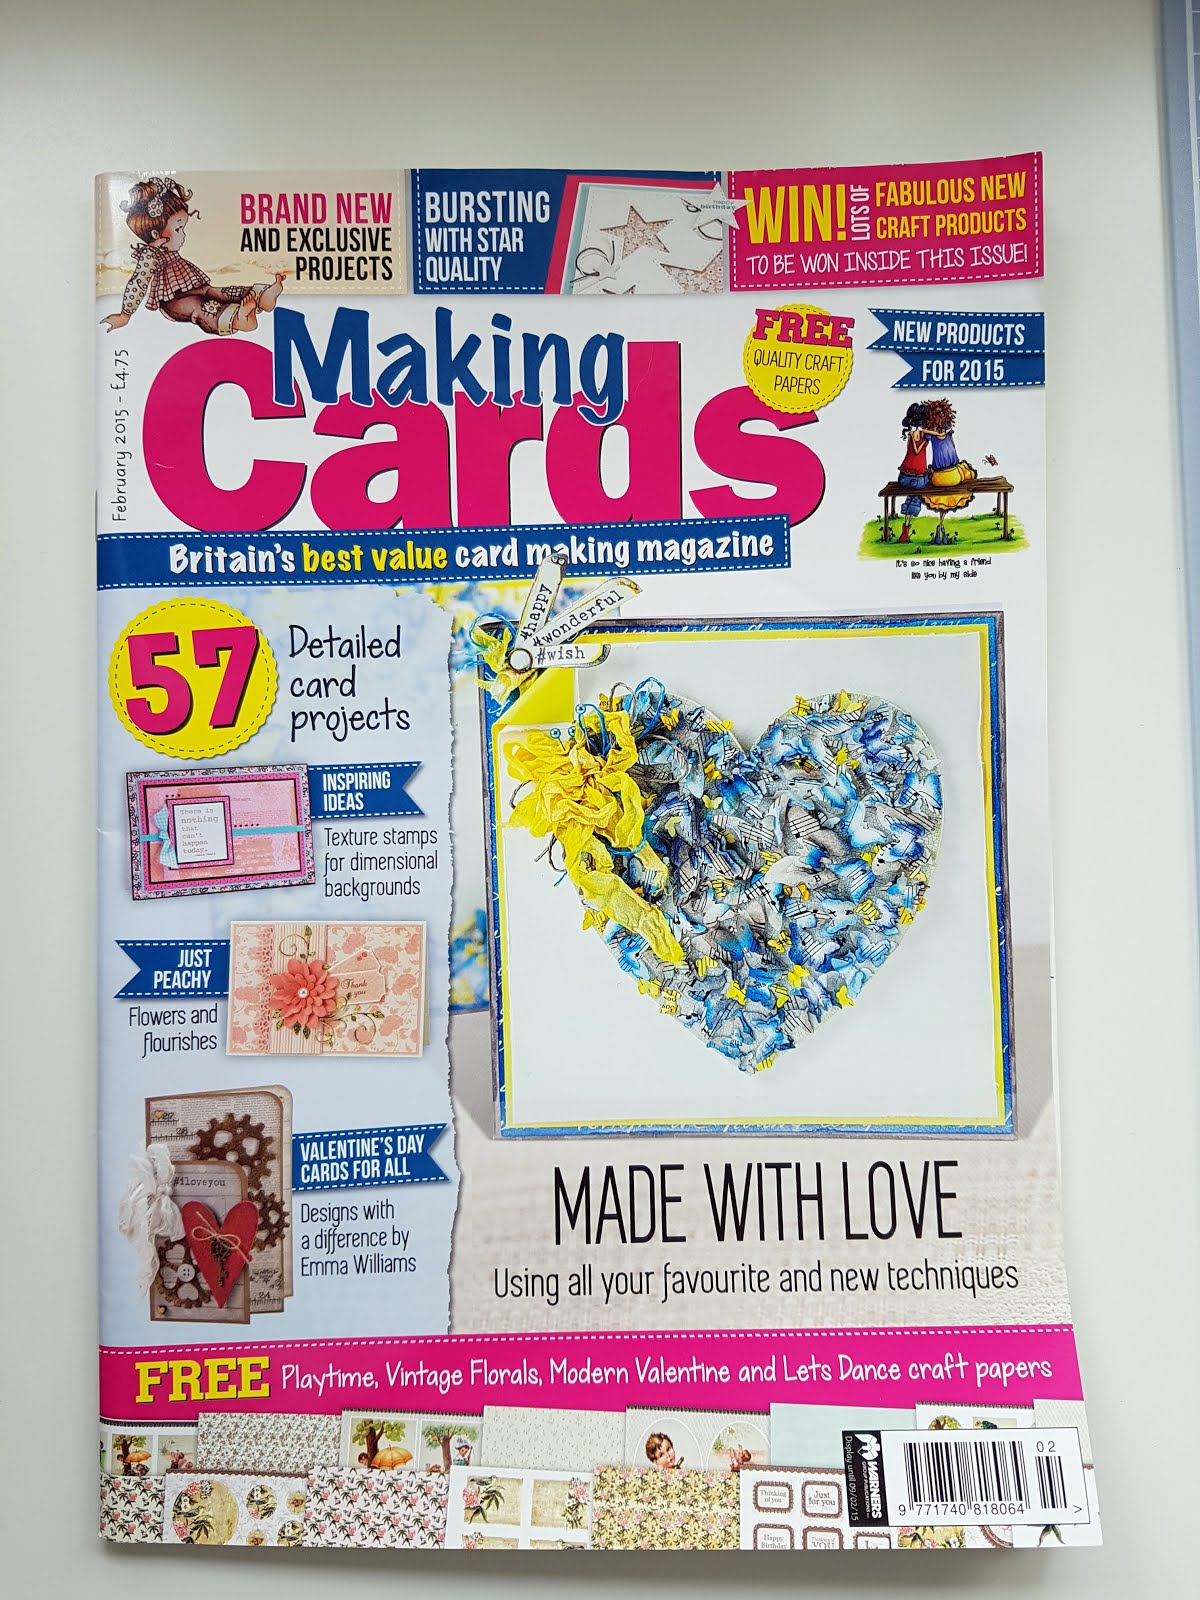 Published - Feb 2015 - Making Cards